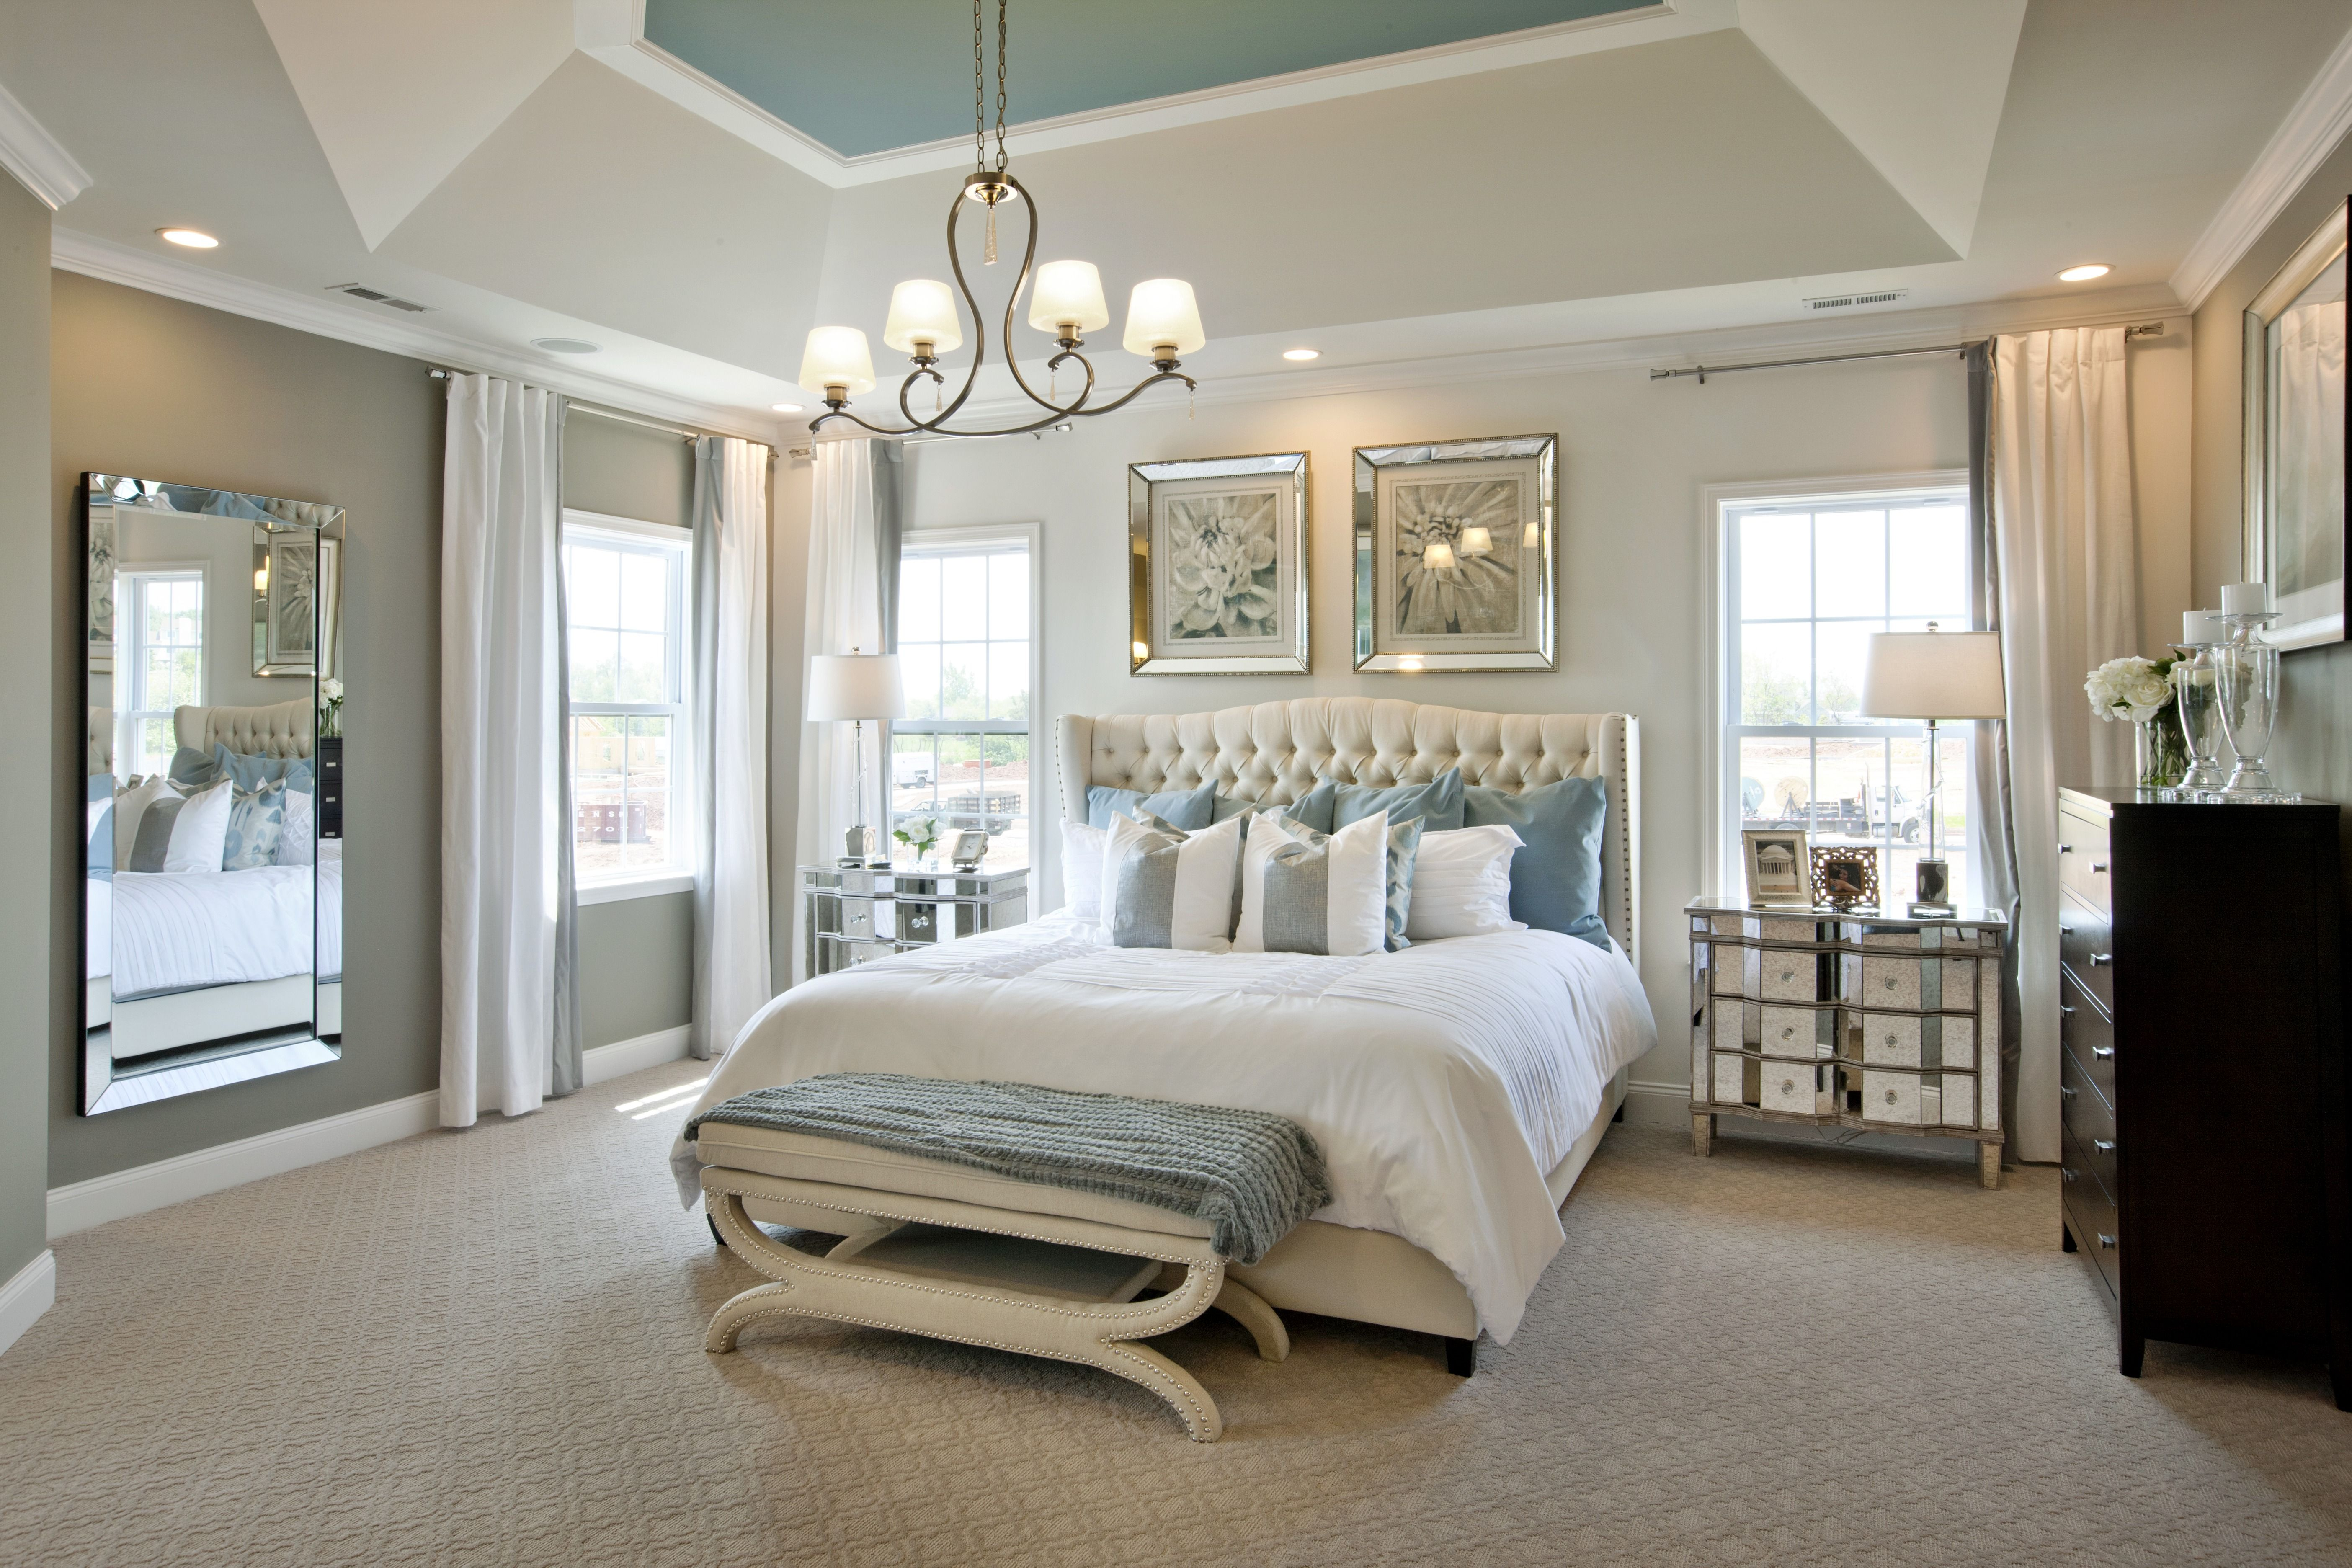 Toll brothers reserve at salford pa bedrooms - Pictures of beautiful master bedrooms ...